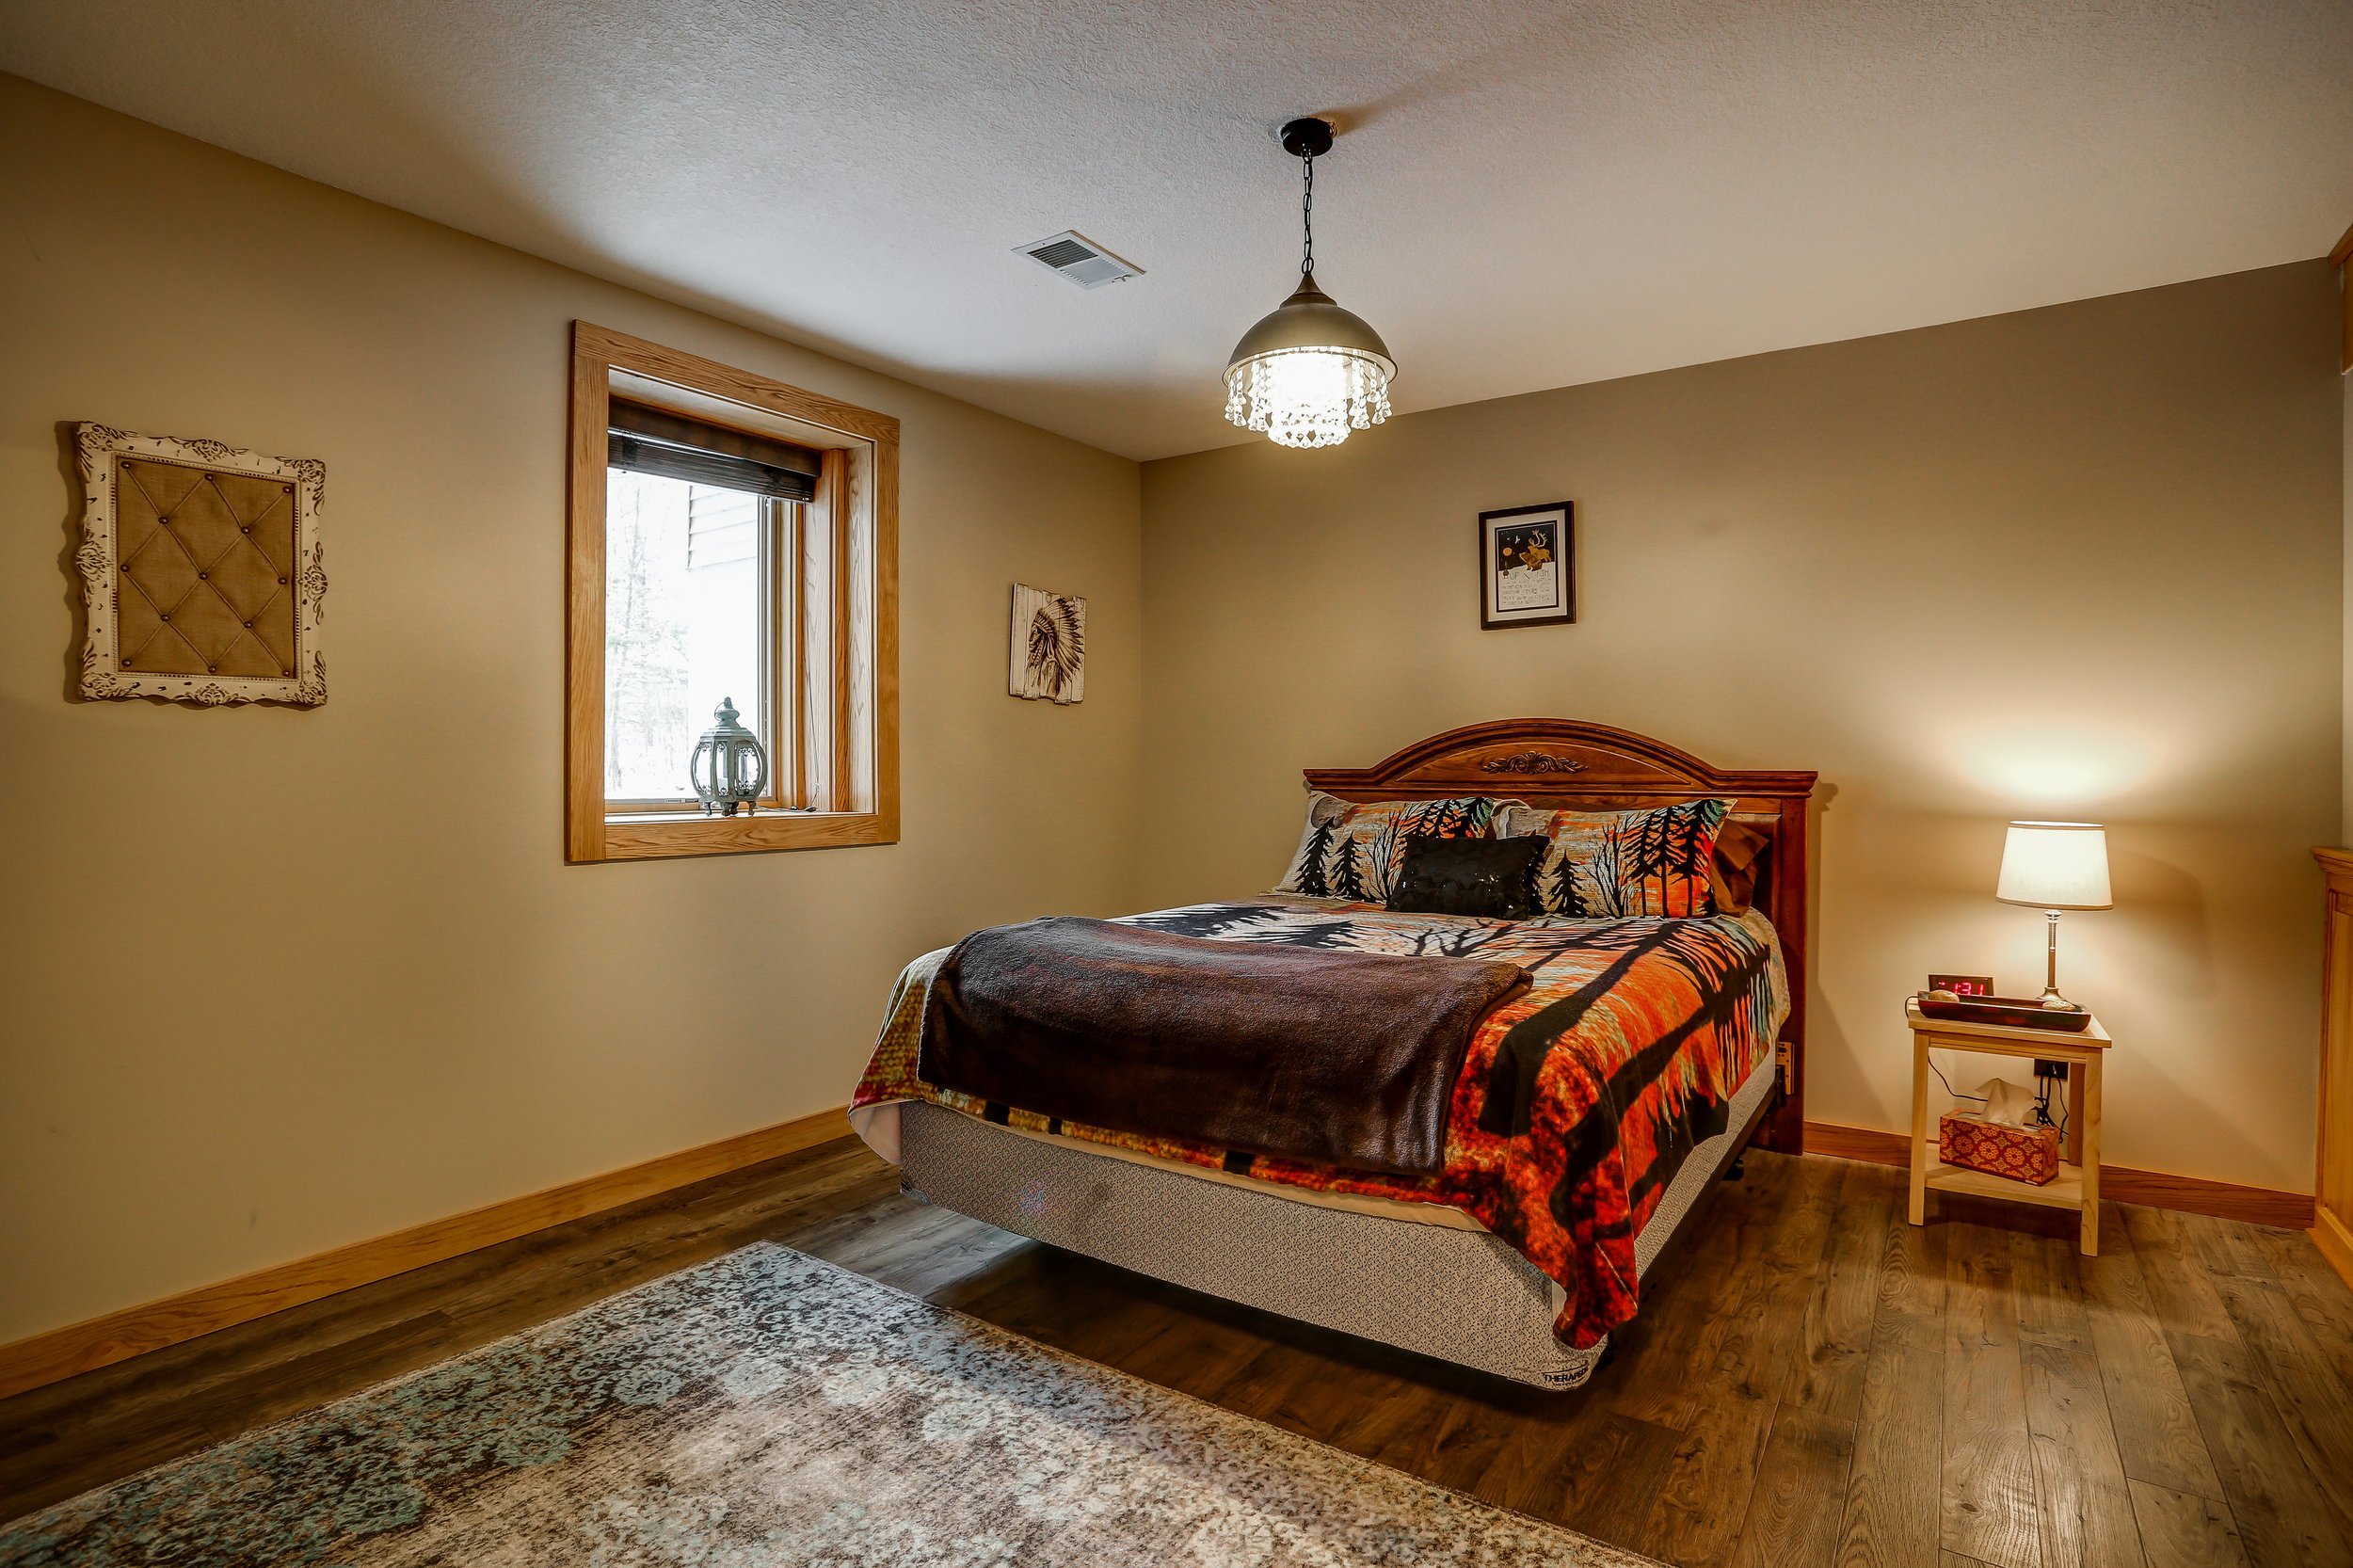 Sweet Dreams Room - Downstairs | Queen bed and shared bathroom in hallway